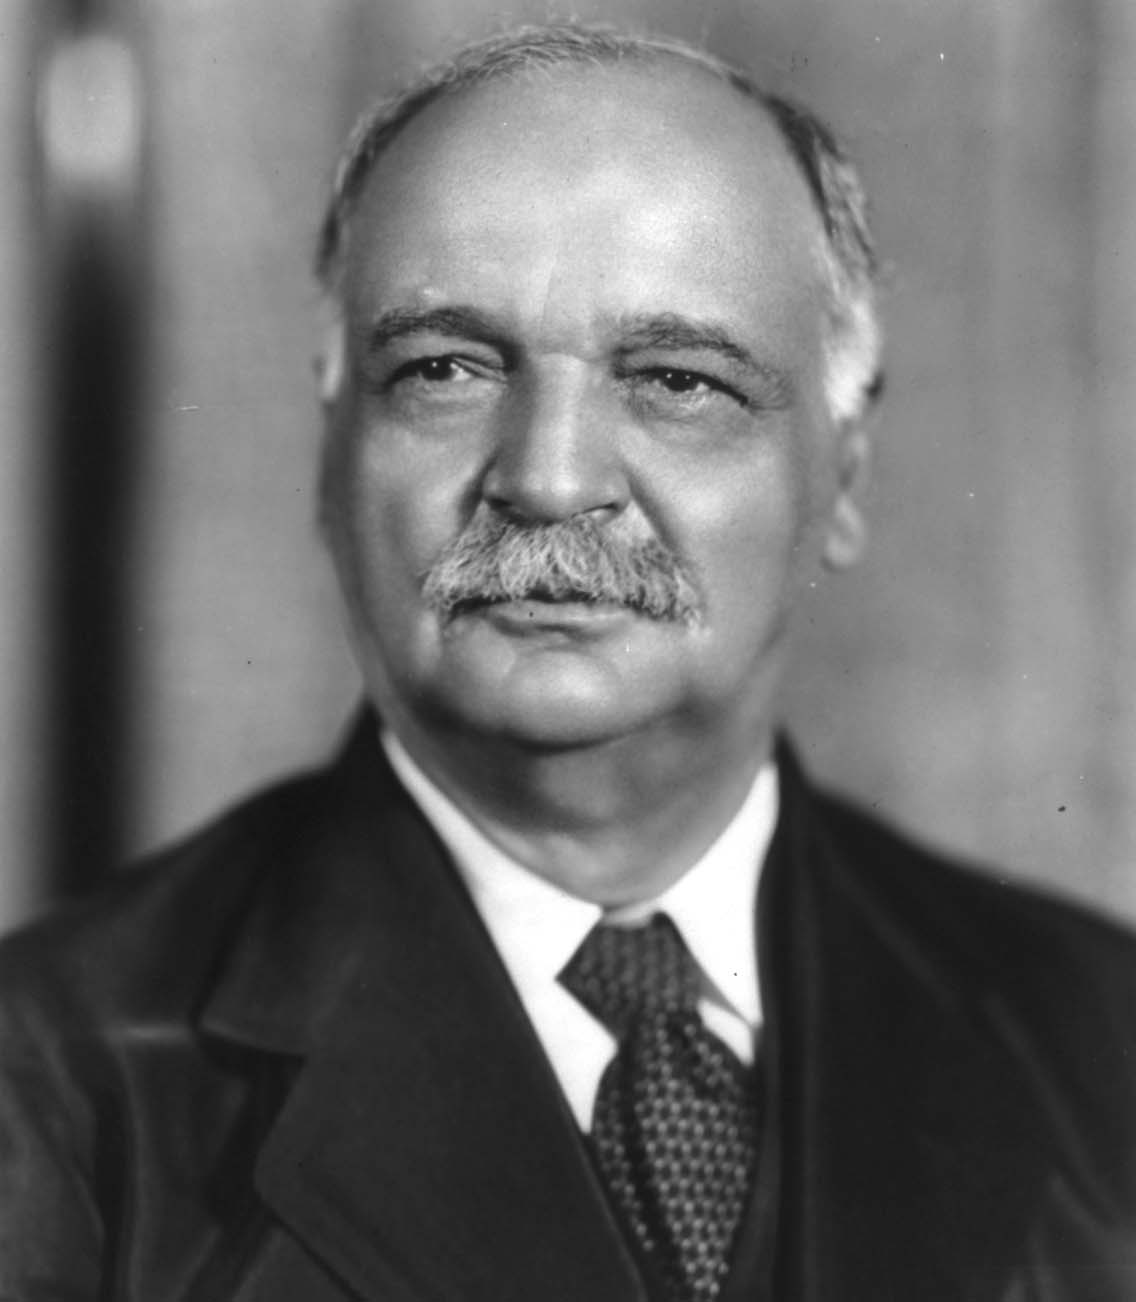 Charles Curtis was Herbert Hoover's vice president. He ...